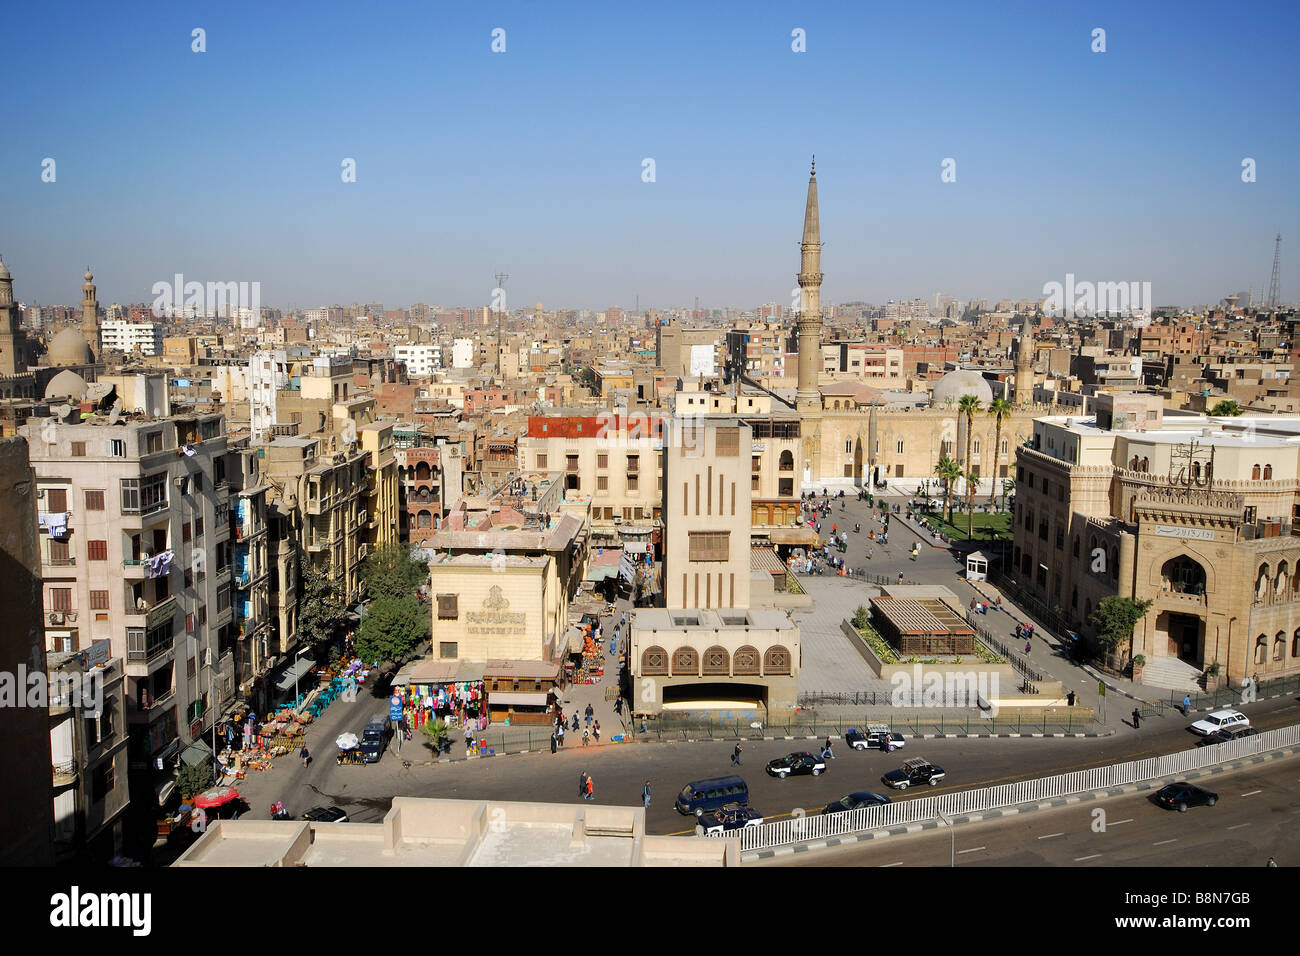 CAIRO, EGYPT. A view over the Khan el-Khalili Bazaar area of Islamic Cairo. 2009. - Stock Image